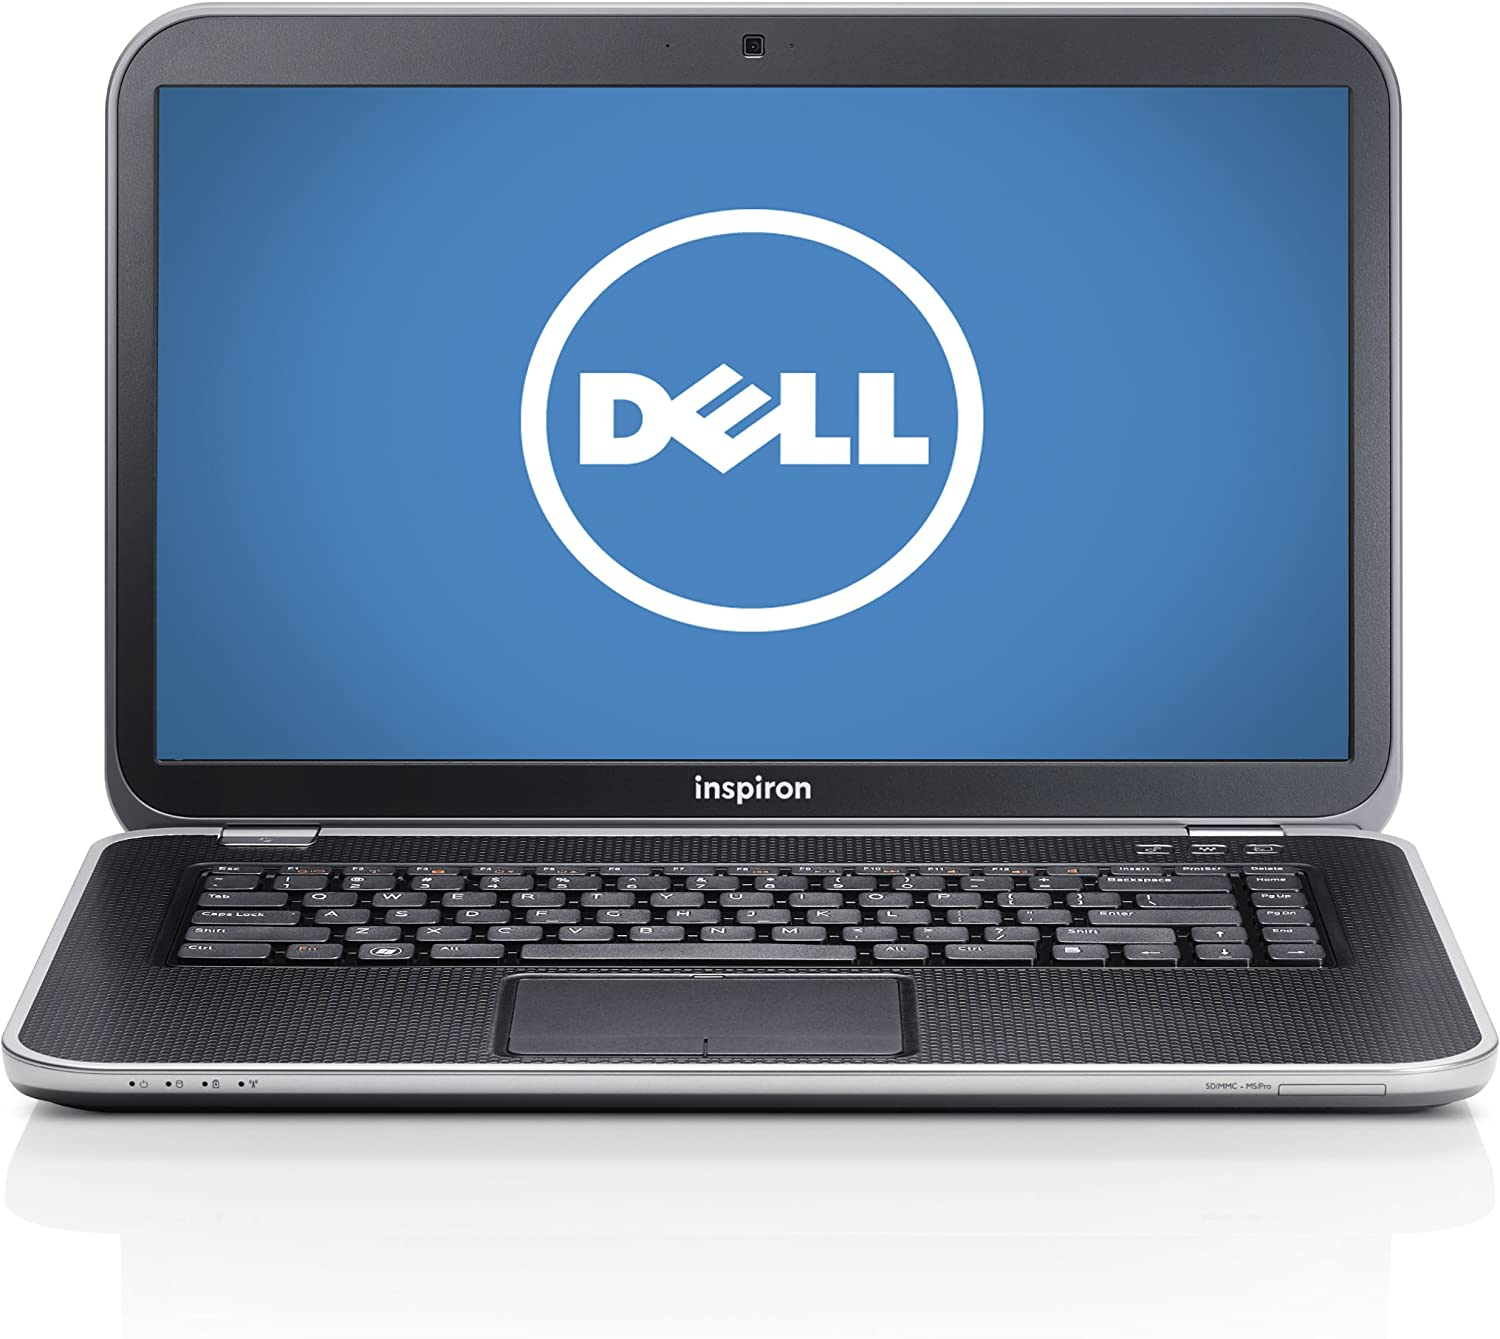 Dell Inspiron Special Edition i15Rse-4267ALU 15-Inch FHD 1080p Laptop / i7-3632QM / 2GB AMD Radeon HD 7730M Video Card/ 8GB / 750GB / Windows 8 [Discontinued By Manufacturer]